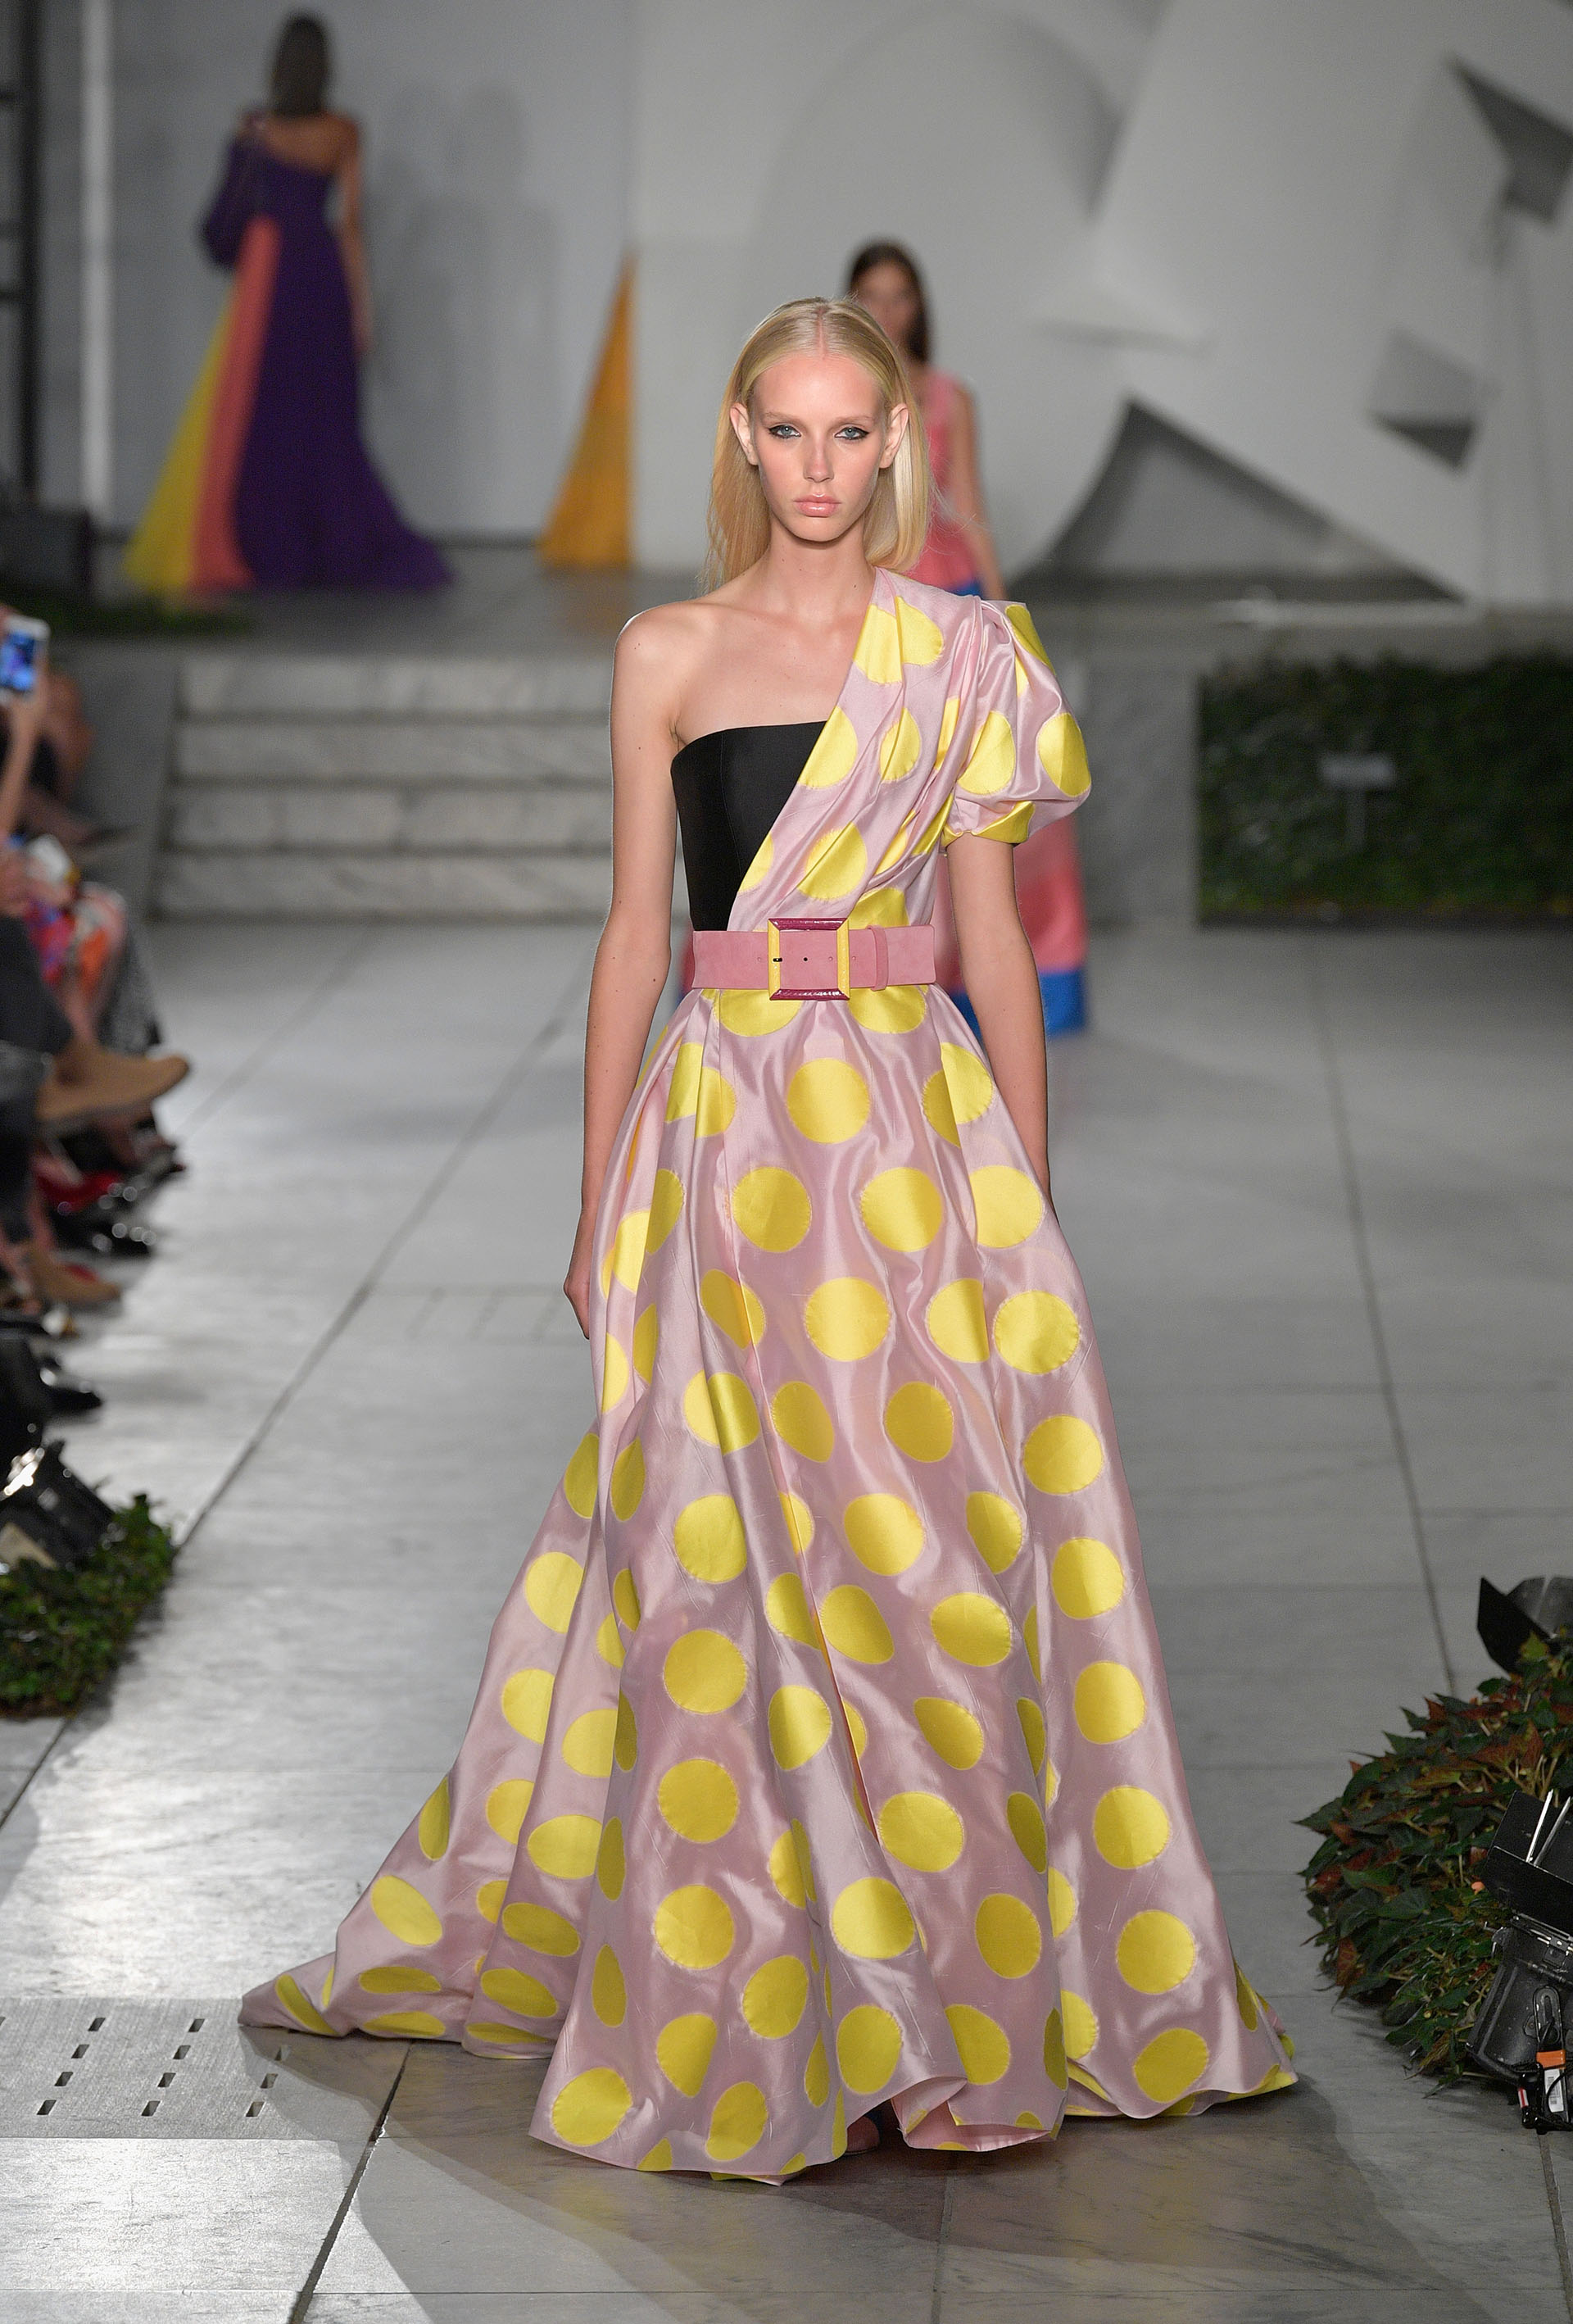 El amarillo iluminó los diseños glamorosos y femeninos (Slaven Vlasic/Getty Images For TRESemme Carolina Herrera)